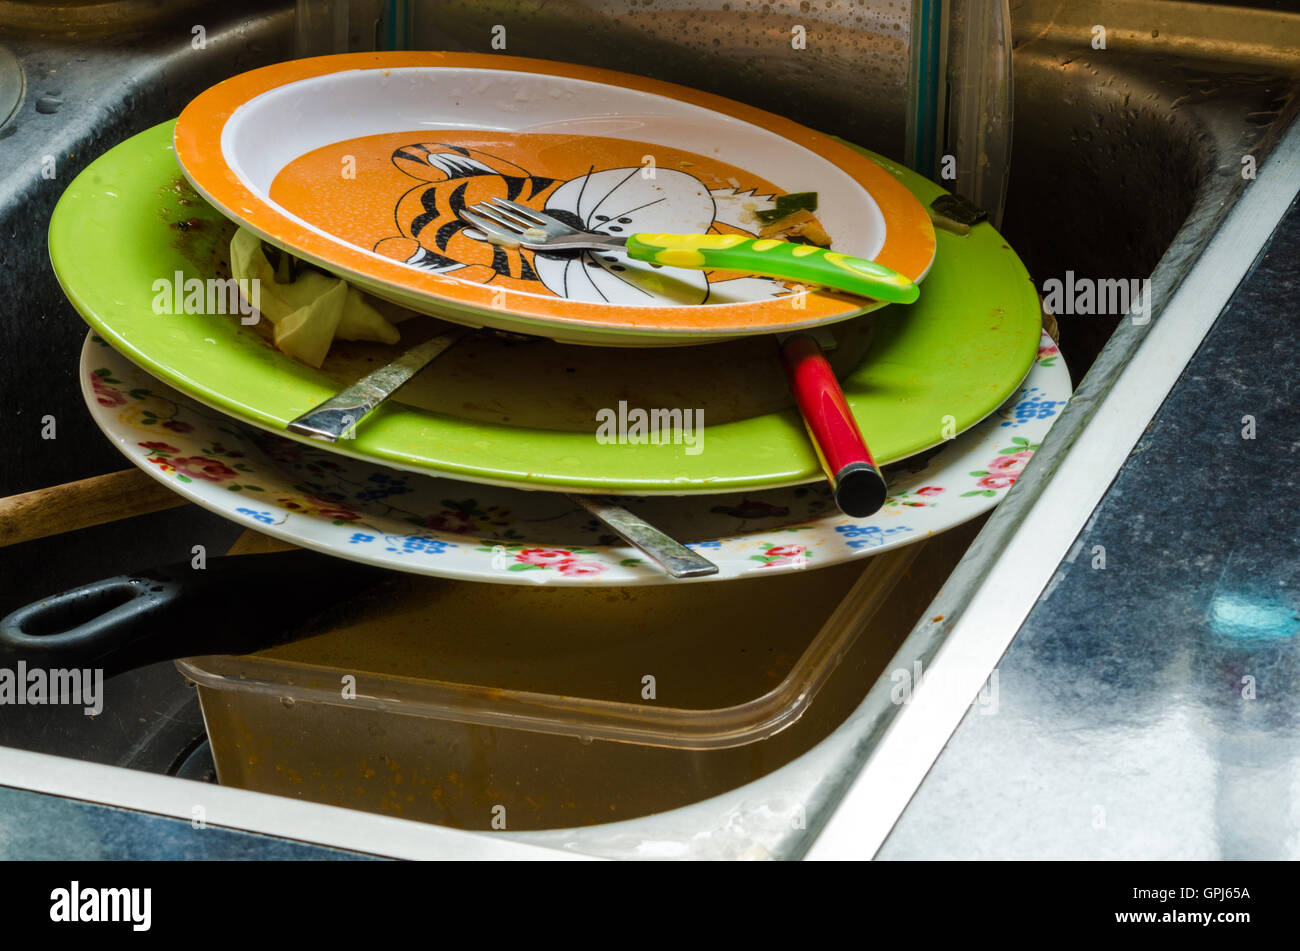 A pile of dirty plates and washing up in the kitchen sink. - Stock Image